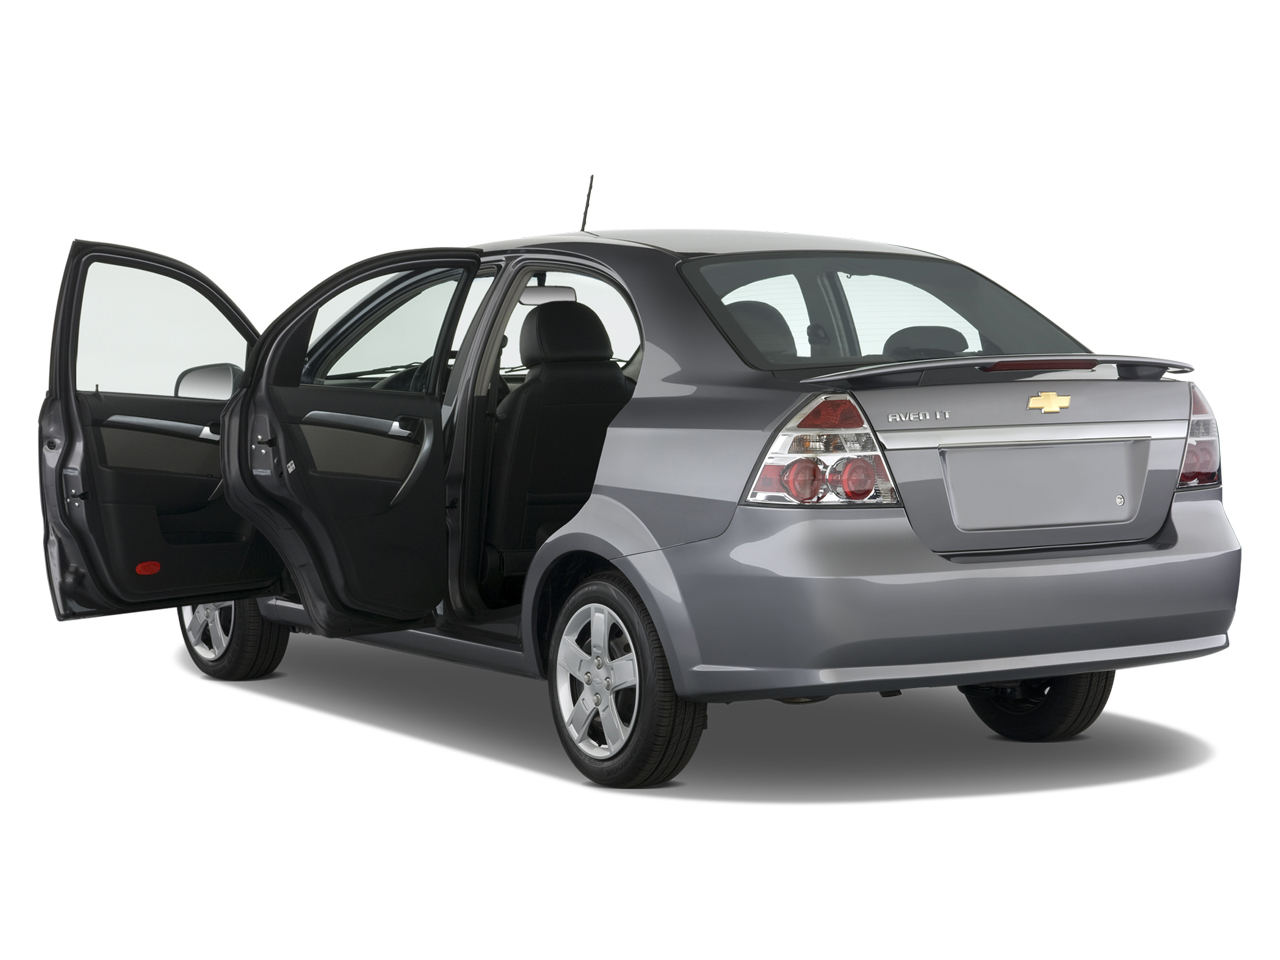 2009 chevrolet aveo5 latest news features and auto. Black Bedroom Furniture Sets. Home Design Ideas